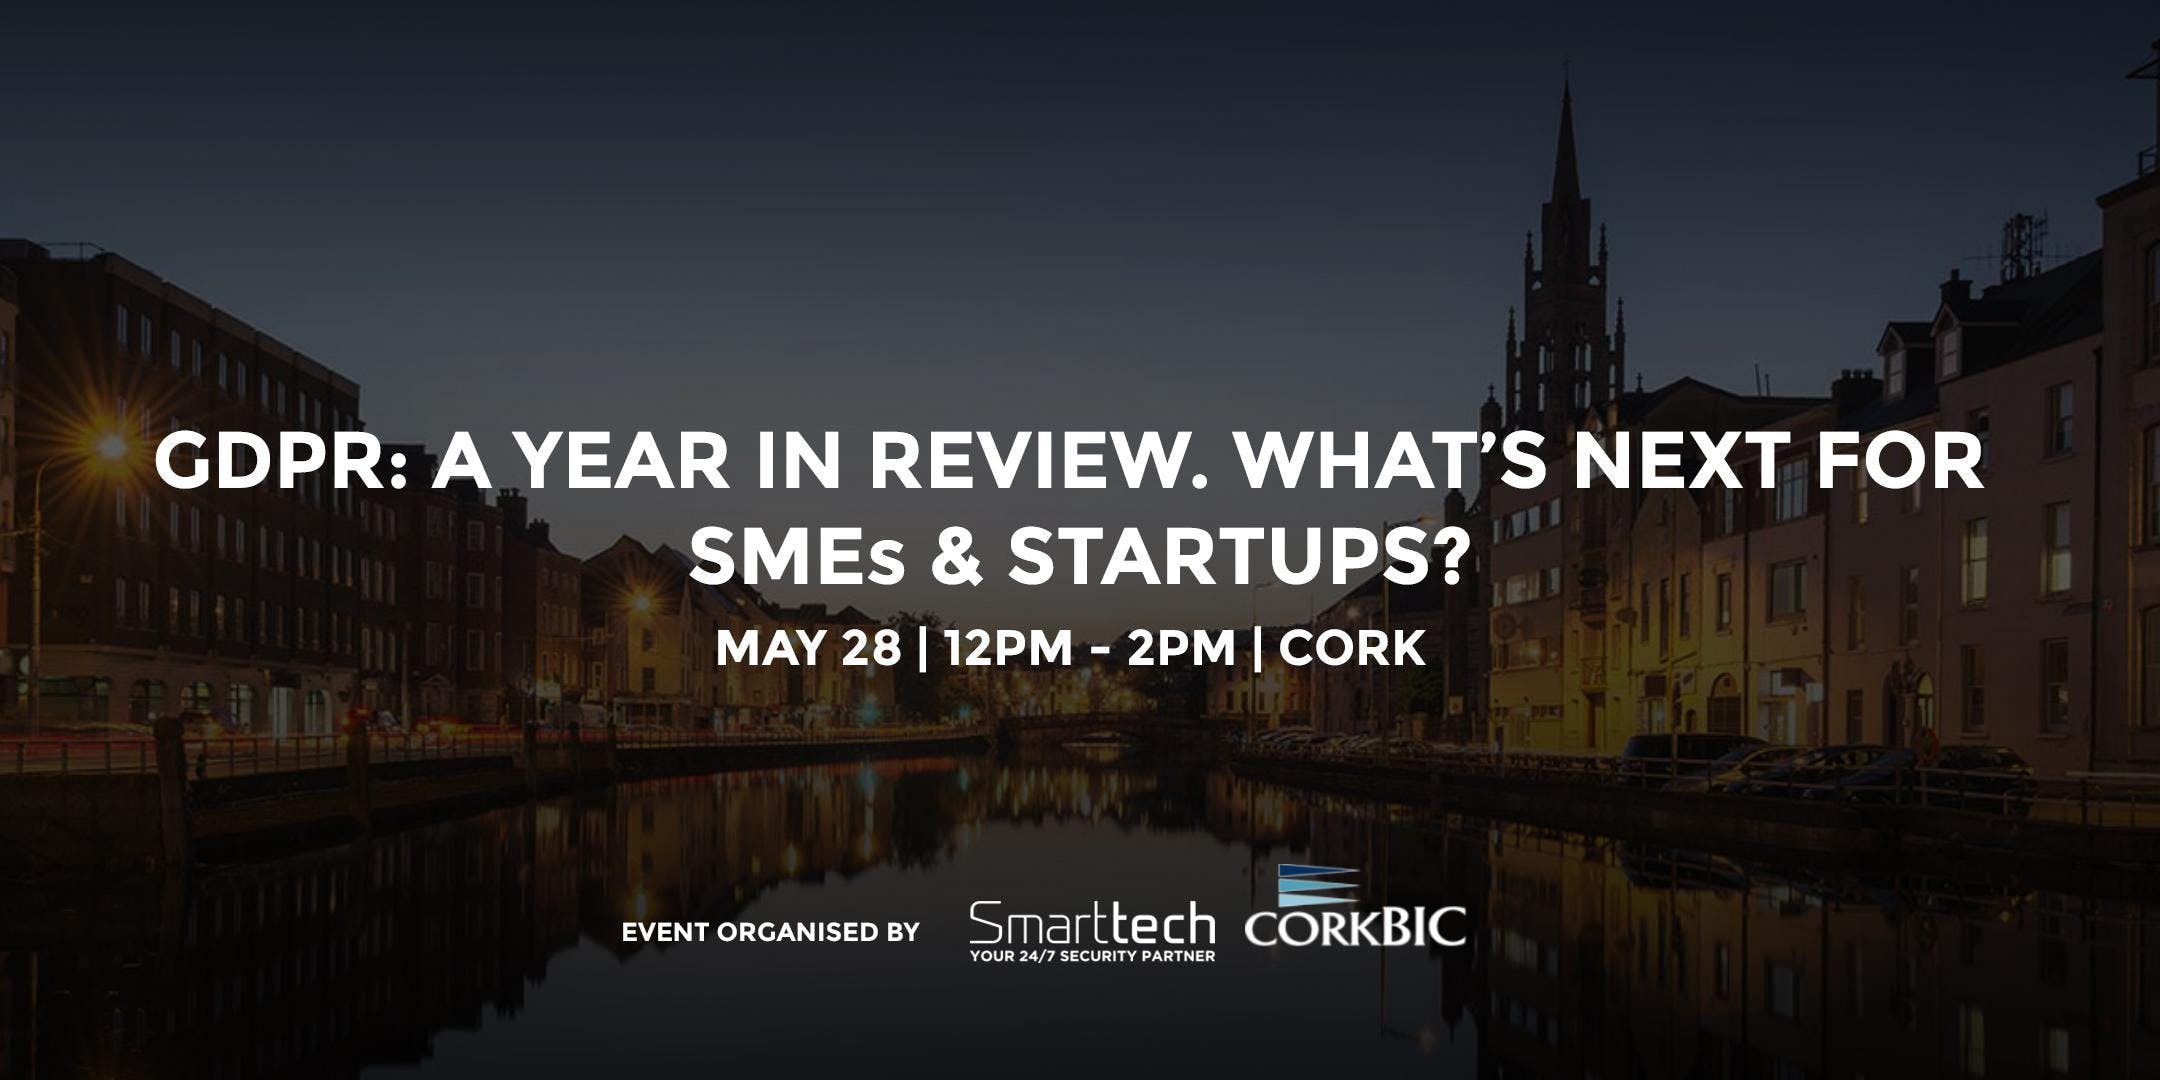 GDPR: A Year in Review. What's next for SMEs and StartUps?